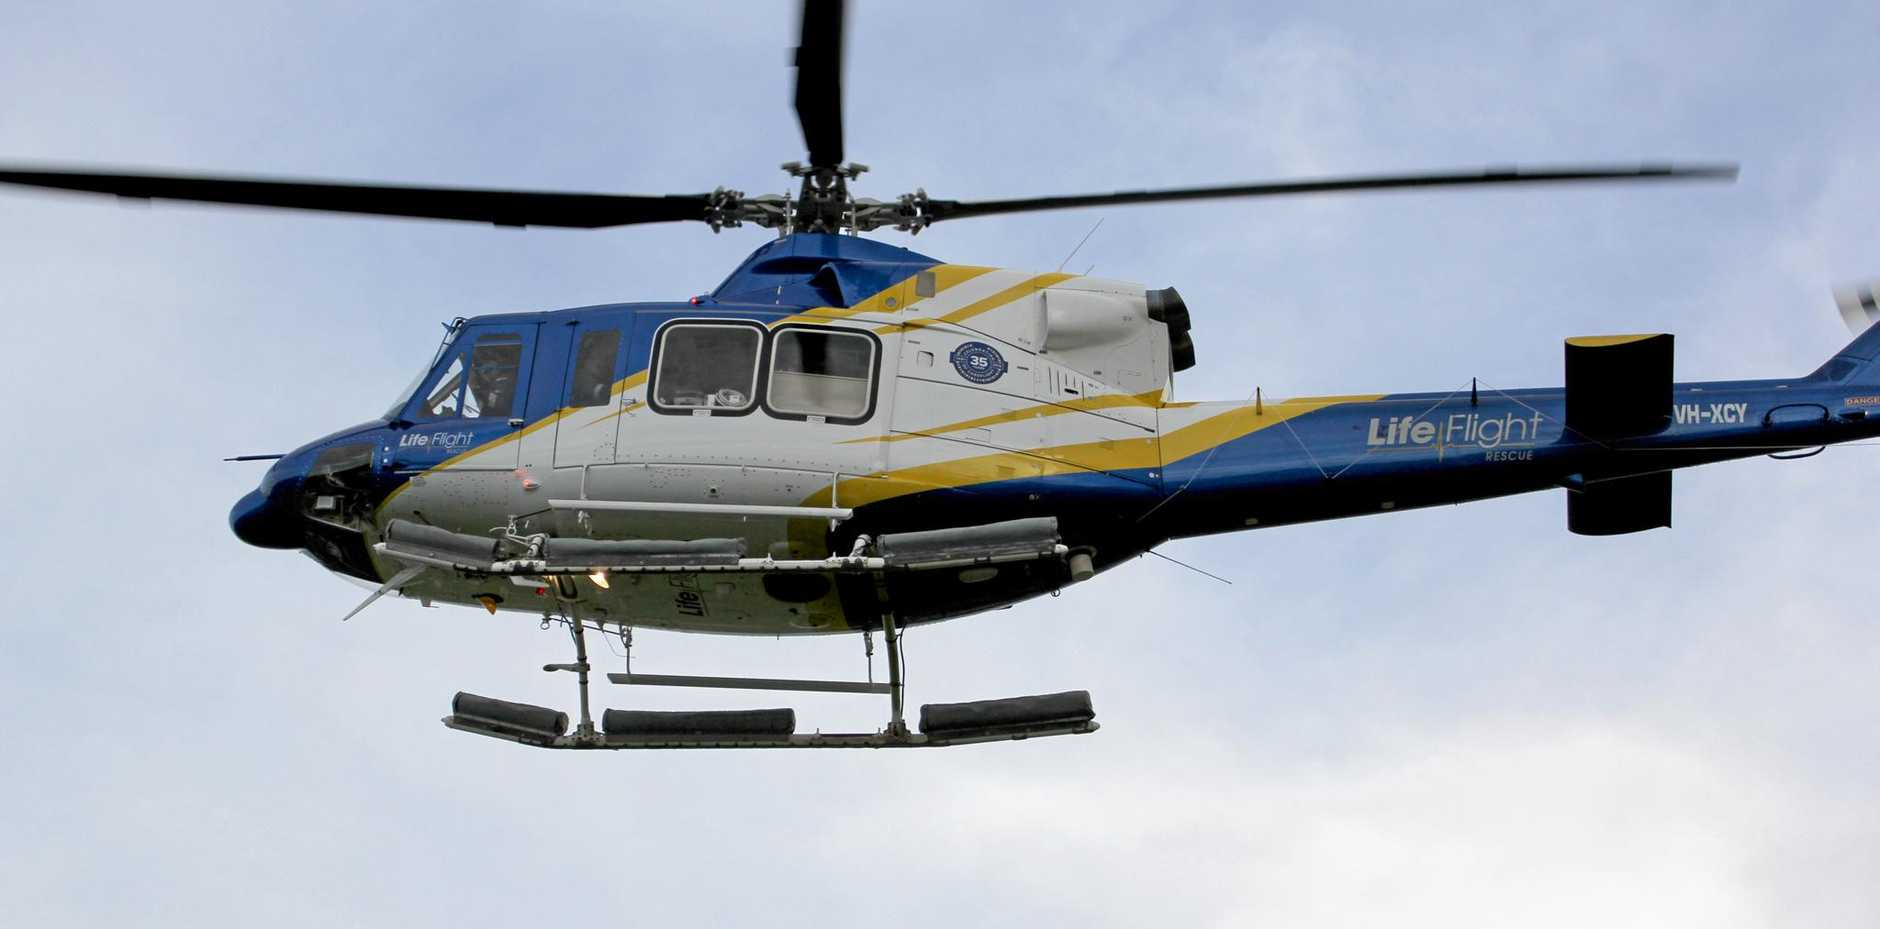 AIRLIFT: A man has been airlifted from Bauple after emergency treatment for a suspected taipan bite.